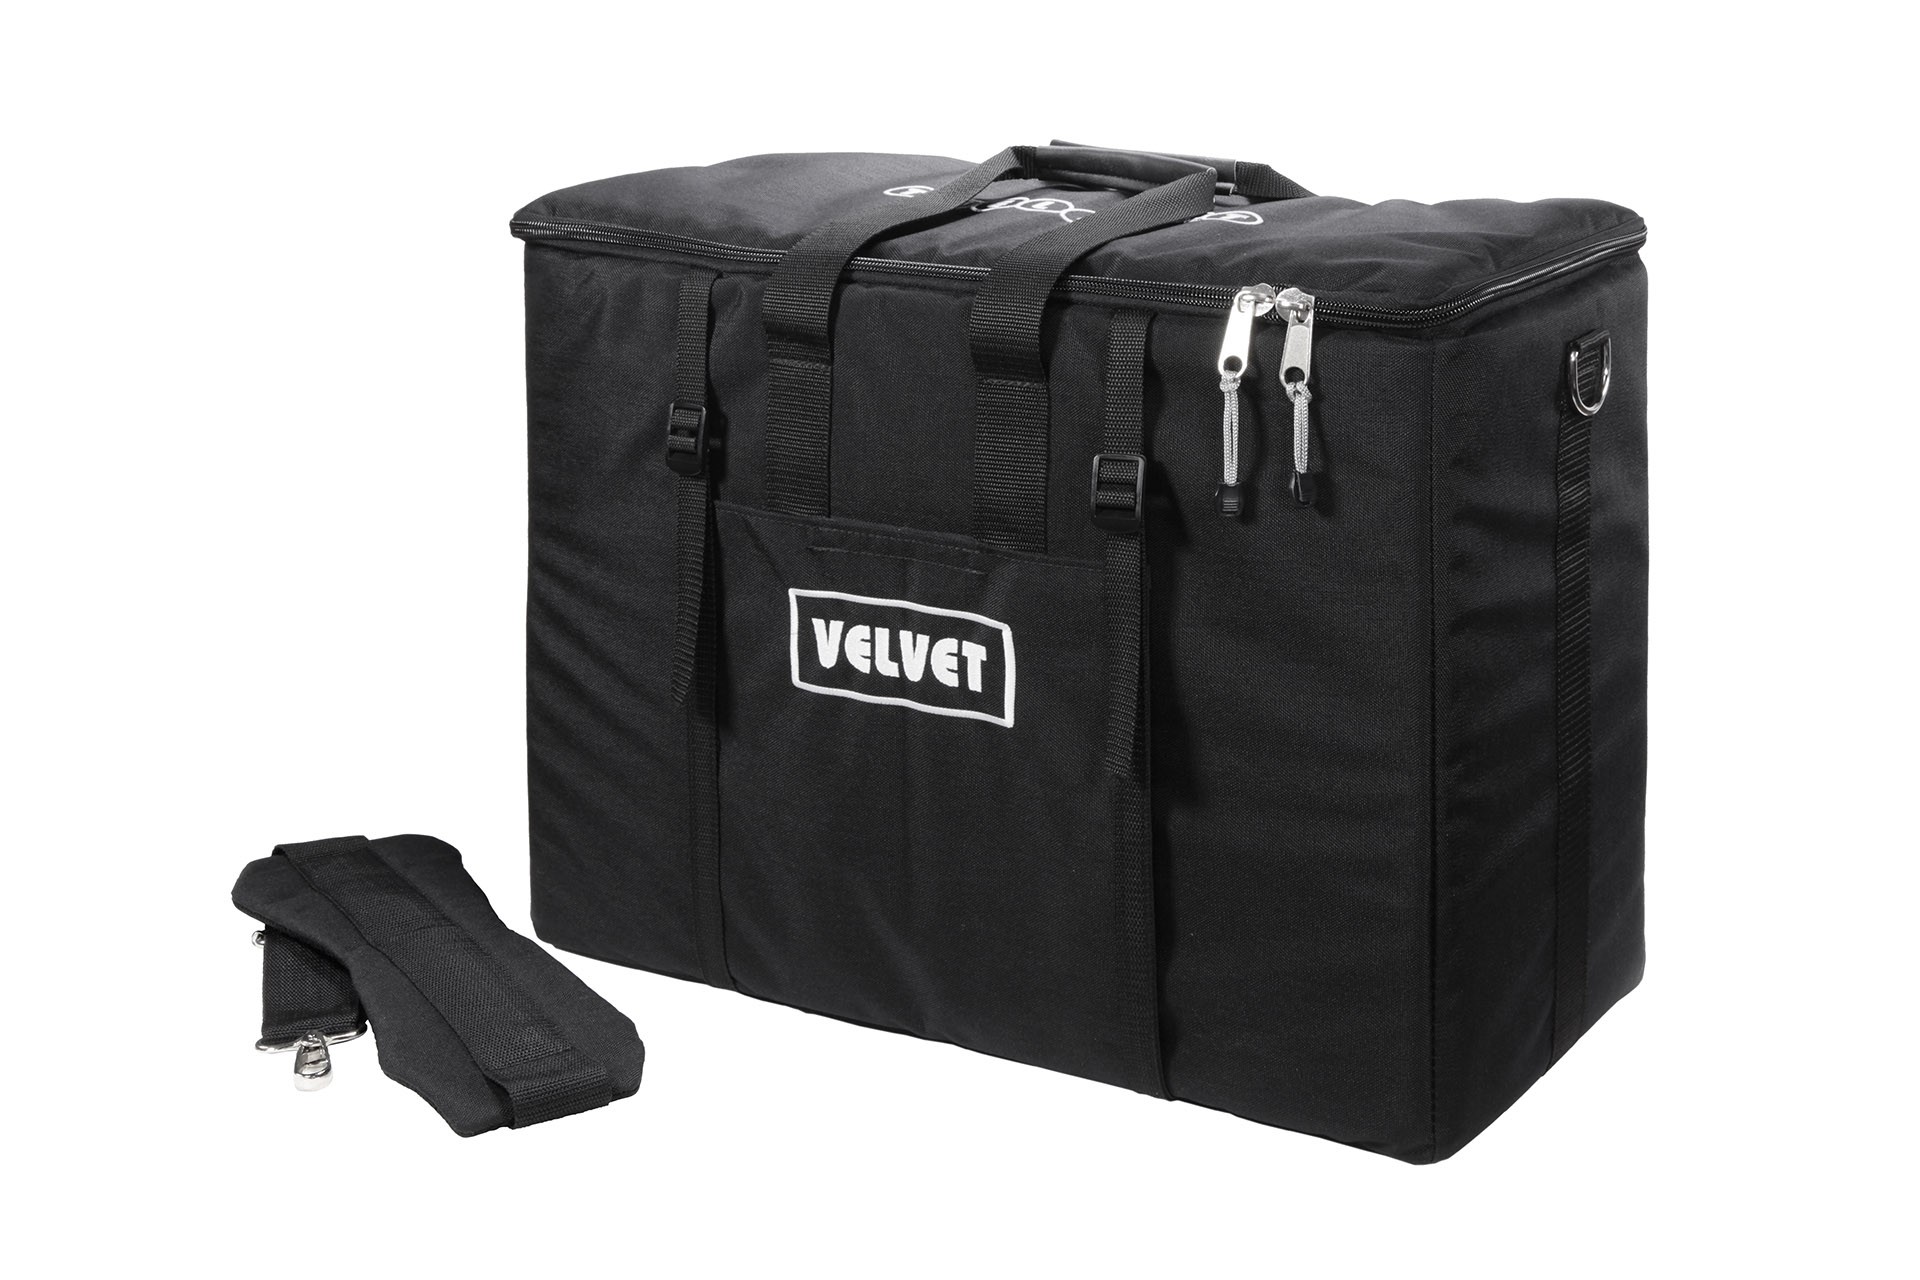 VL1x2-Bag Cordura bag for 2x VELVET 1 kits